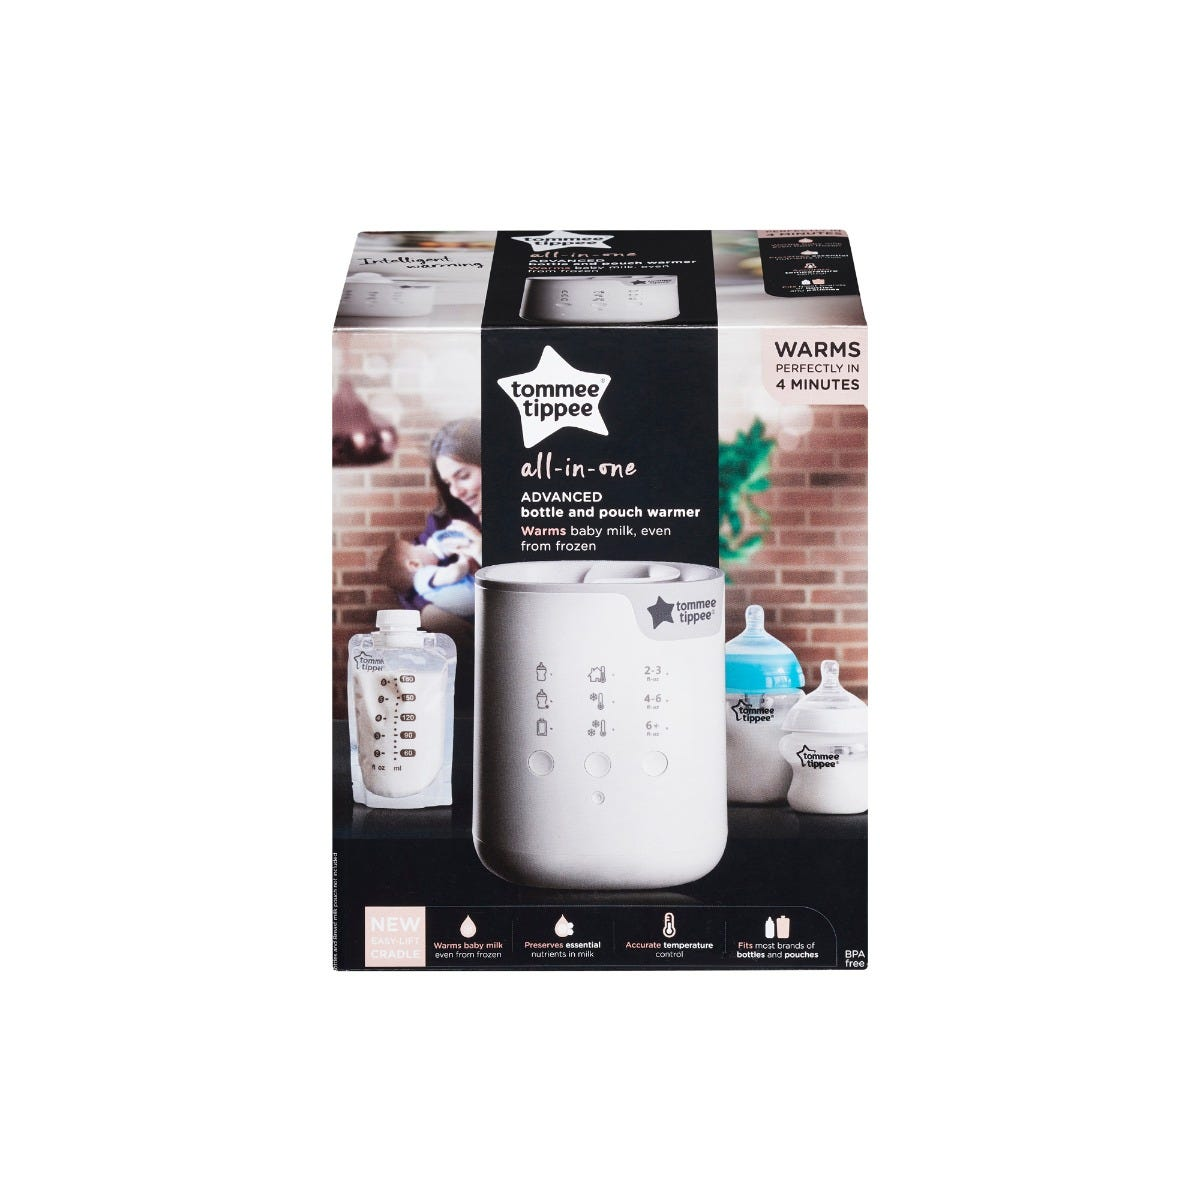 3-in-1 Advanced Bottle and Pouch Warmer packaging